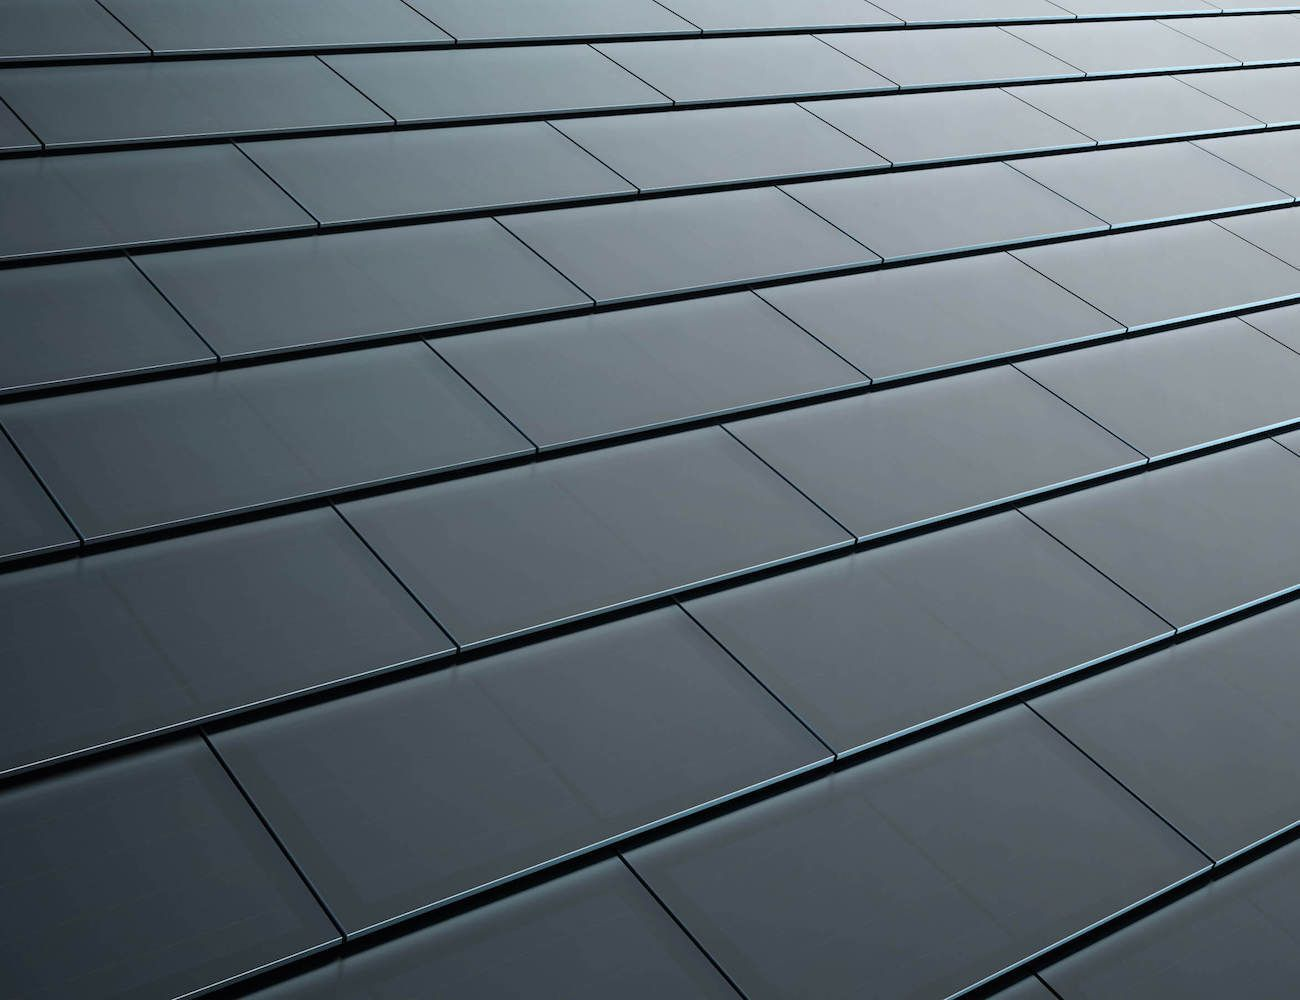 Tesla Solar Roof Sun Powered Shingles Let You Monitor Your Energy Gain And Usage Solar Panels Roof Tesla Solar Roof Solar Shingles